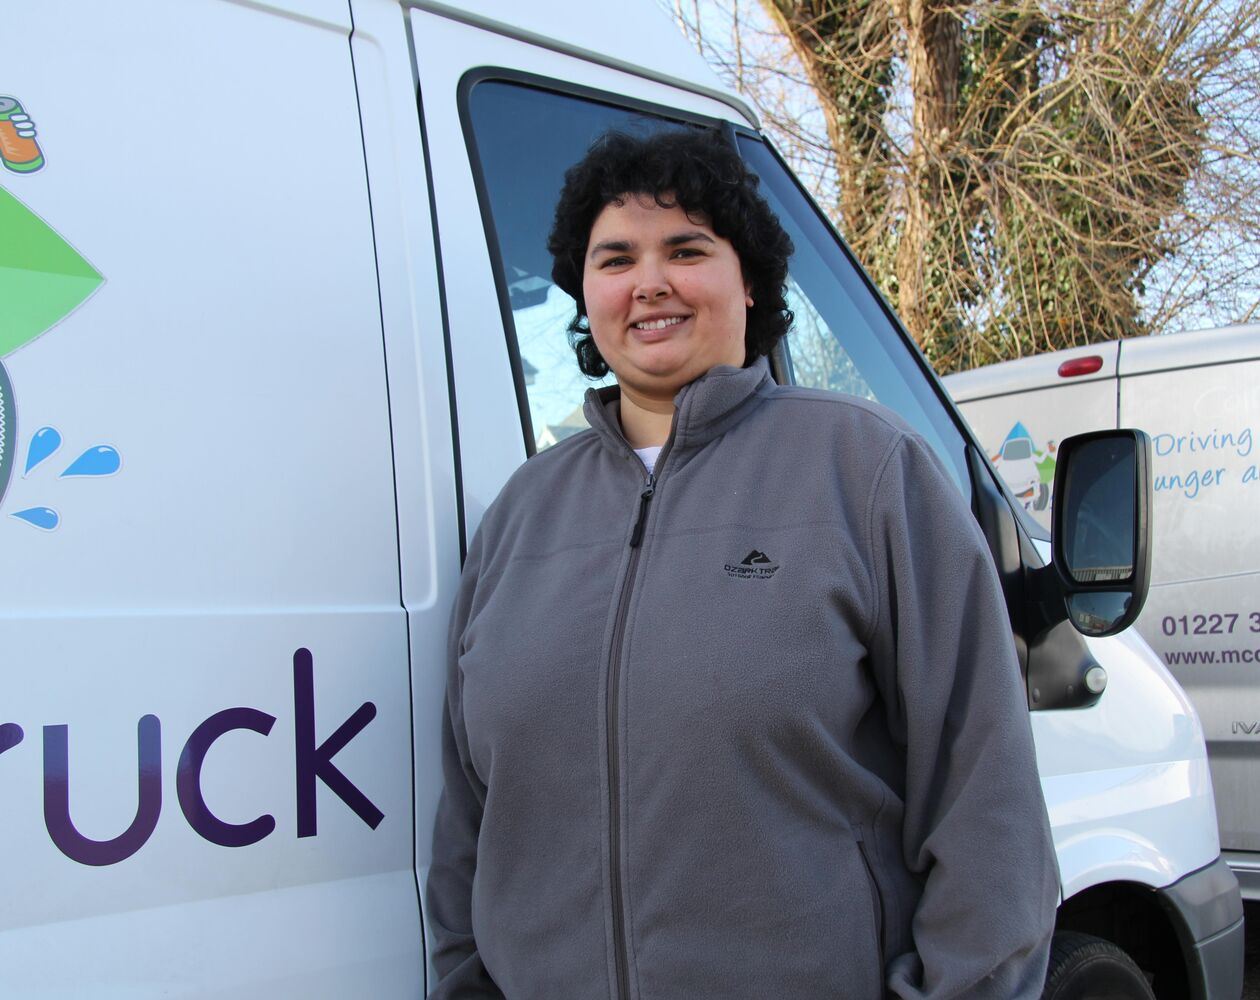 PWS Kim Tuck by Truck